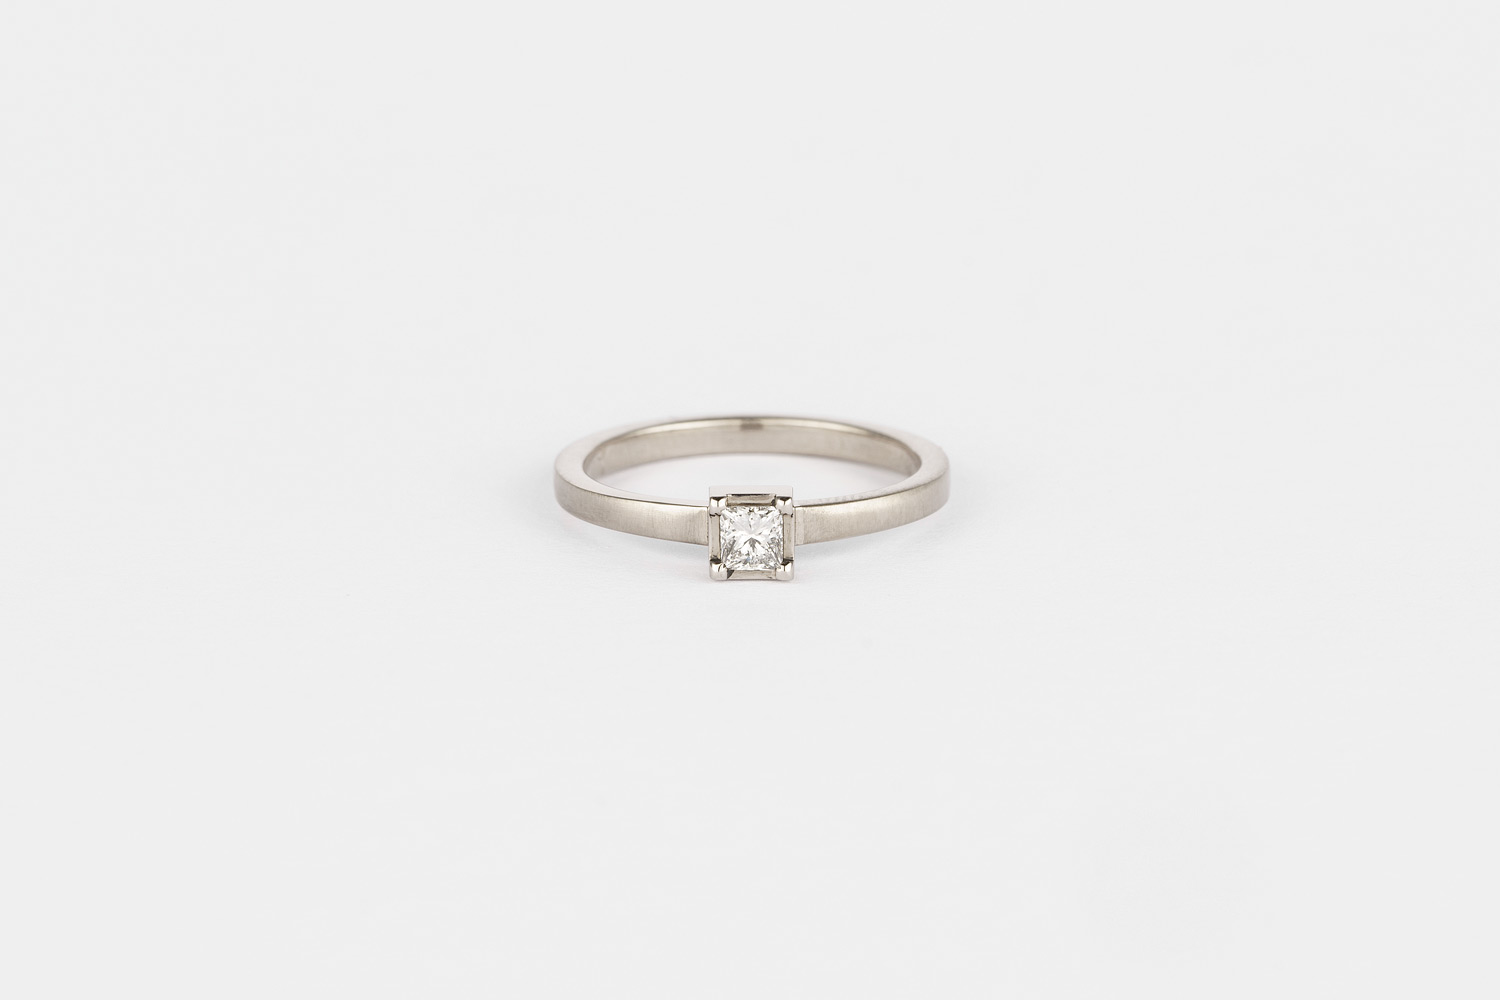 Fairtrade 18ct white gold set with a conflict-free princess-cut diamond